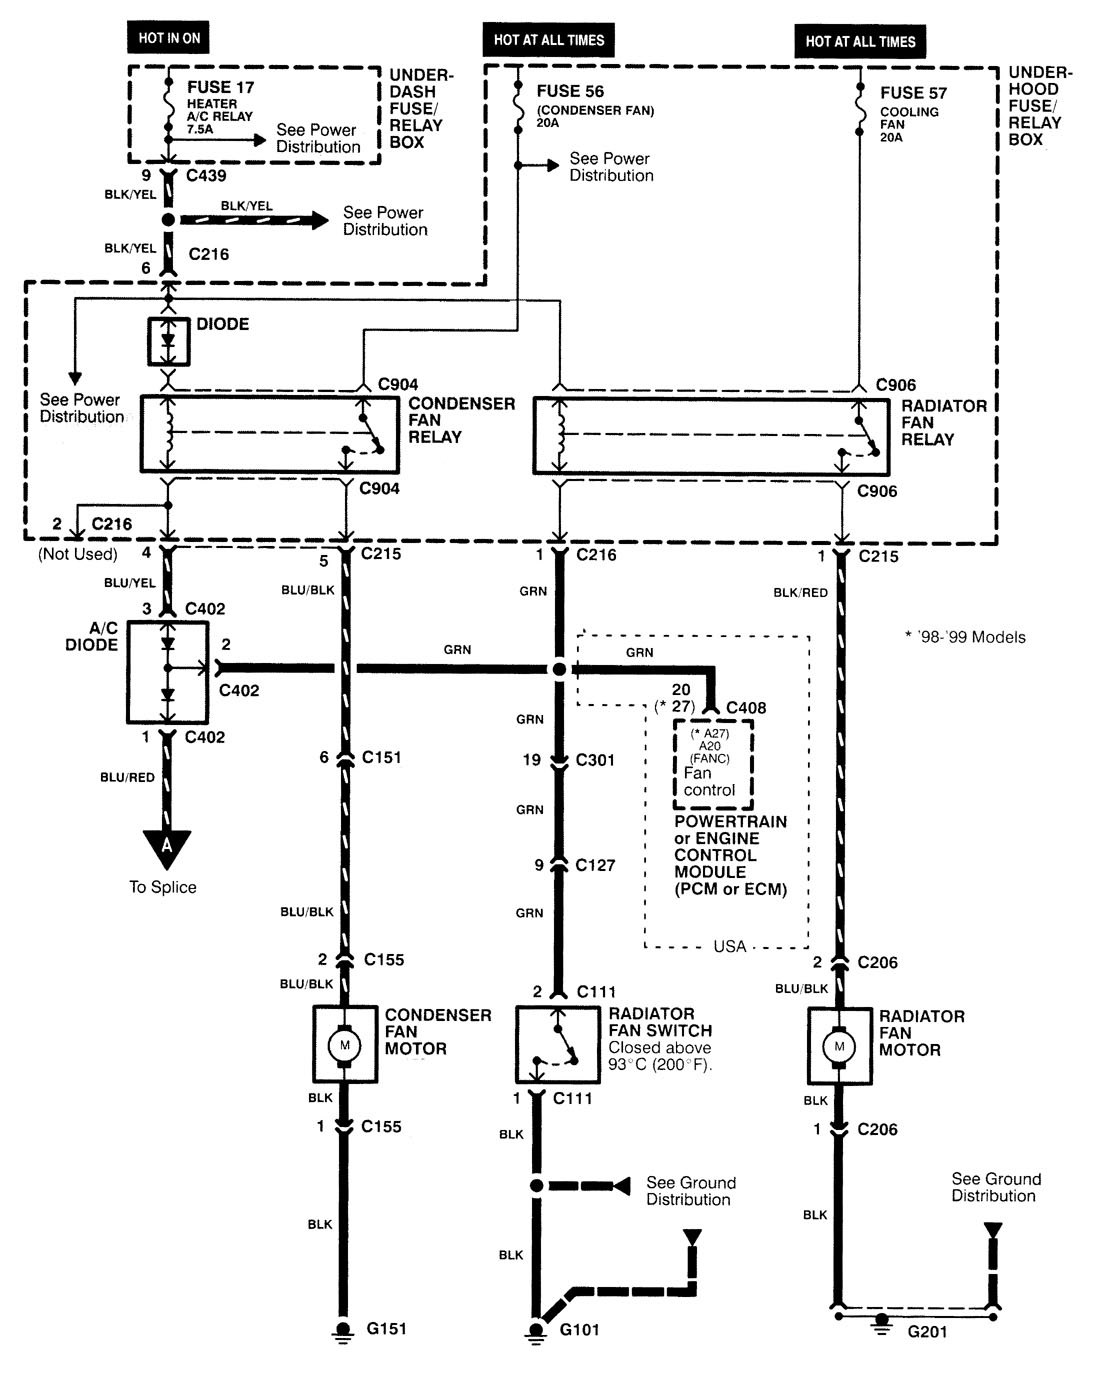 Chrysler fuse box wiring diagram and